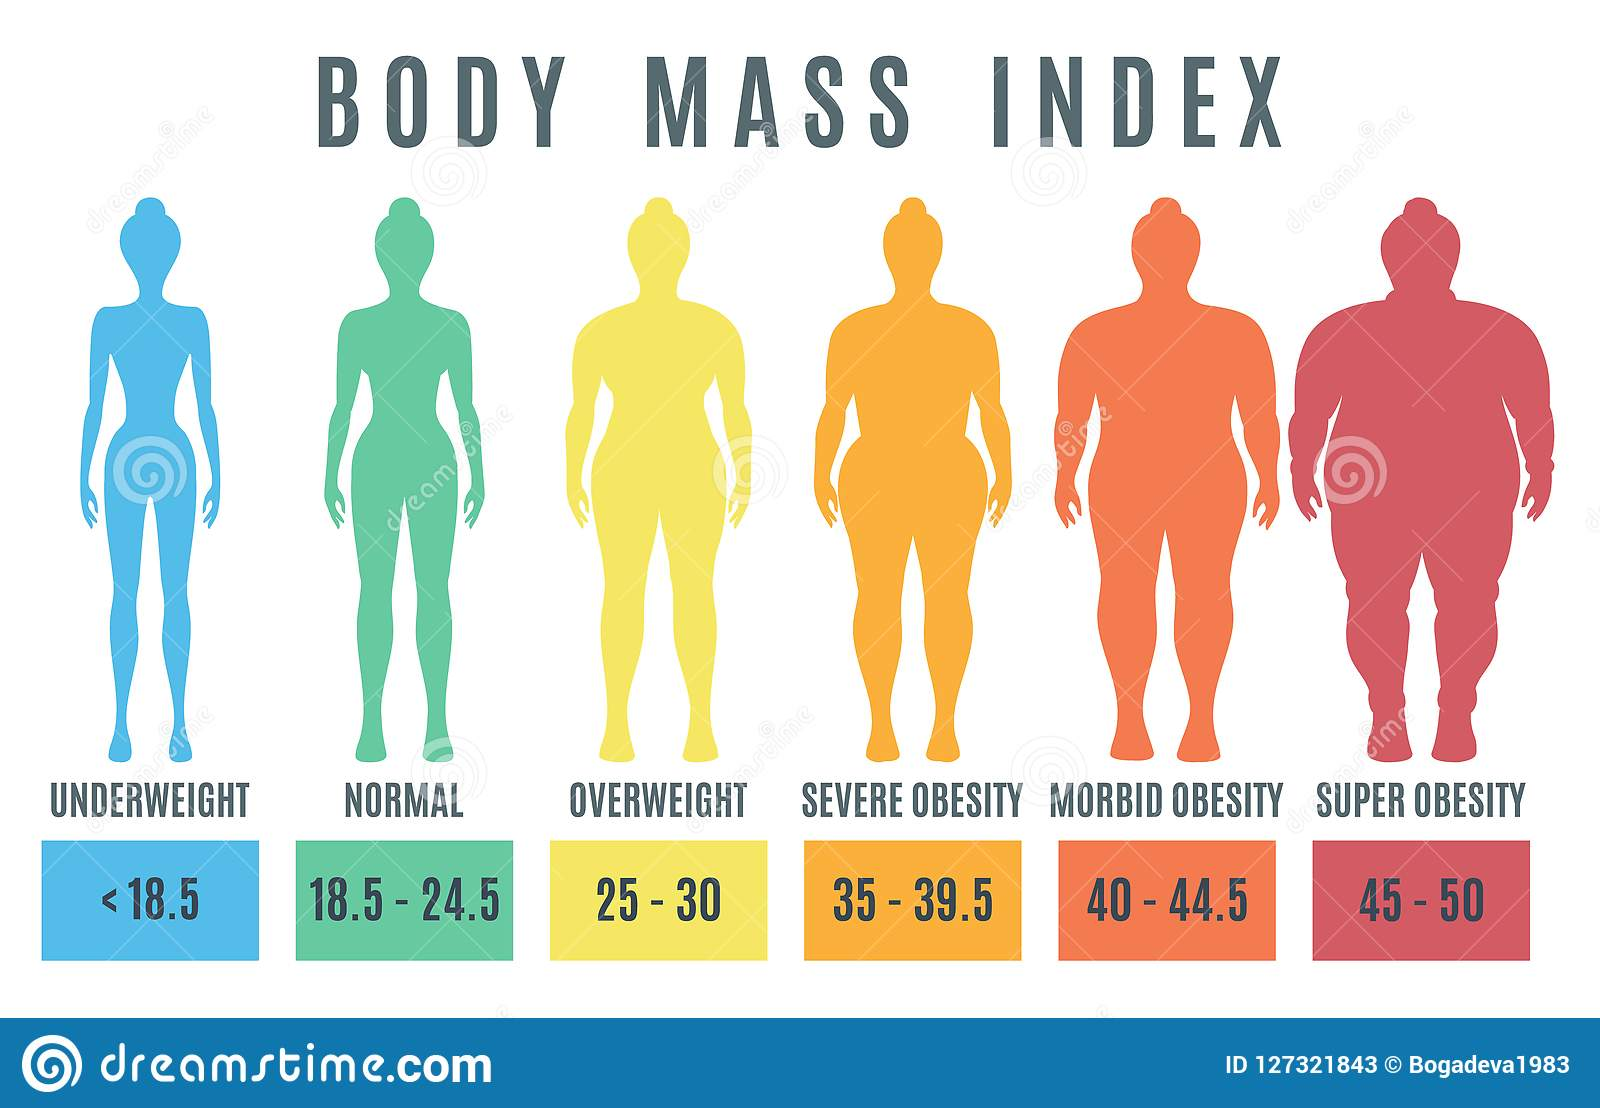 Index Body Mass Bmi Medical And Fitness Chart Vector